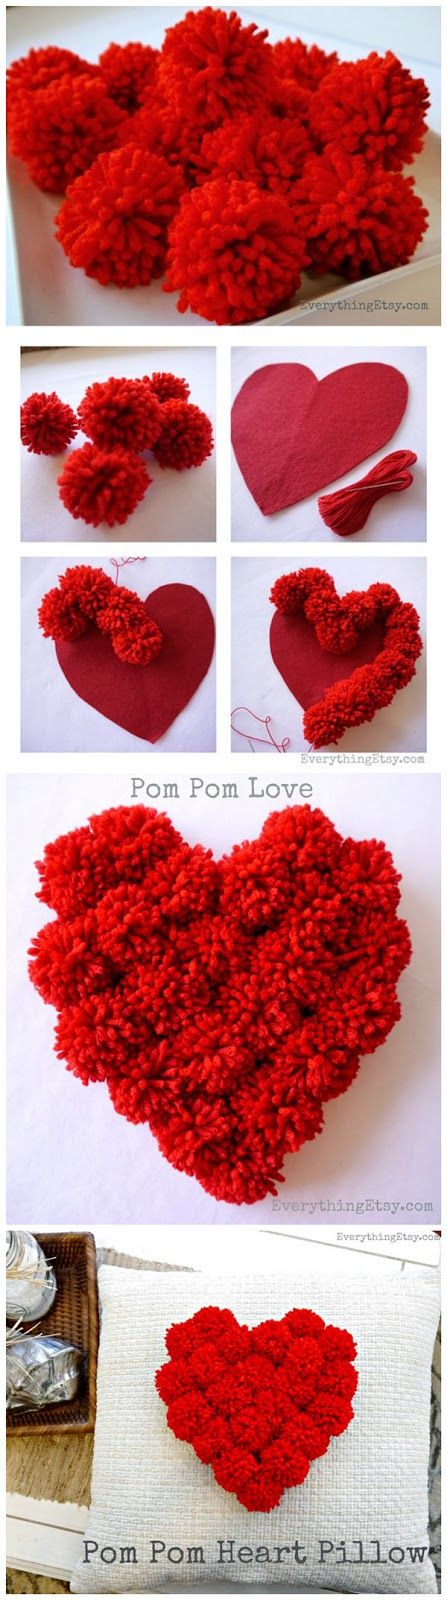 Pom Pom Heart Pillow Love {DIY Decor}- can use any shape or letter!!